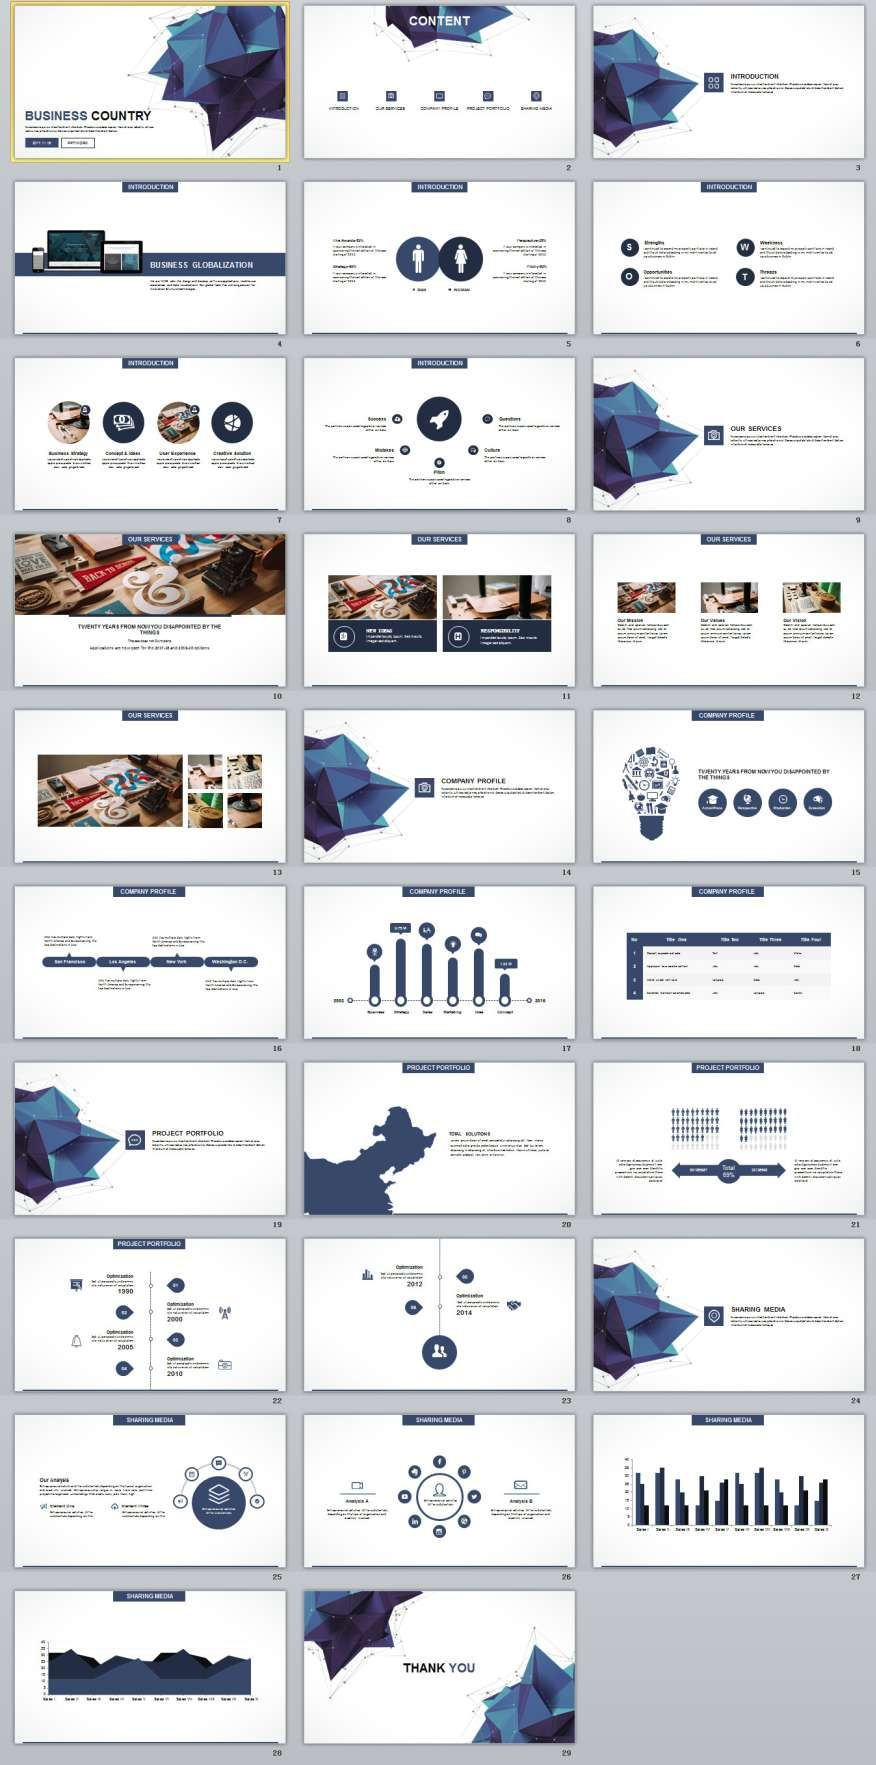 29 white business powerpoint templates currculo e diagramao 29 white business powerpoint templates the highest quality powerpoint templates and keynote templates download toneelgroepblik Images